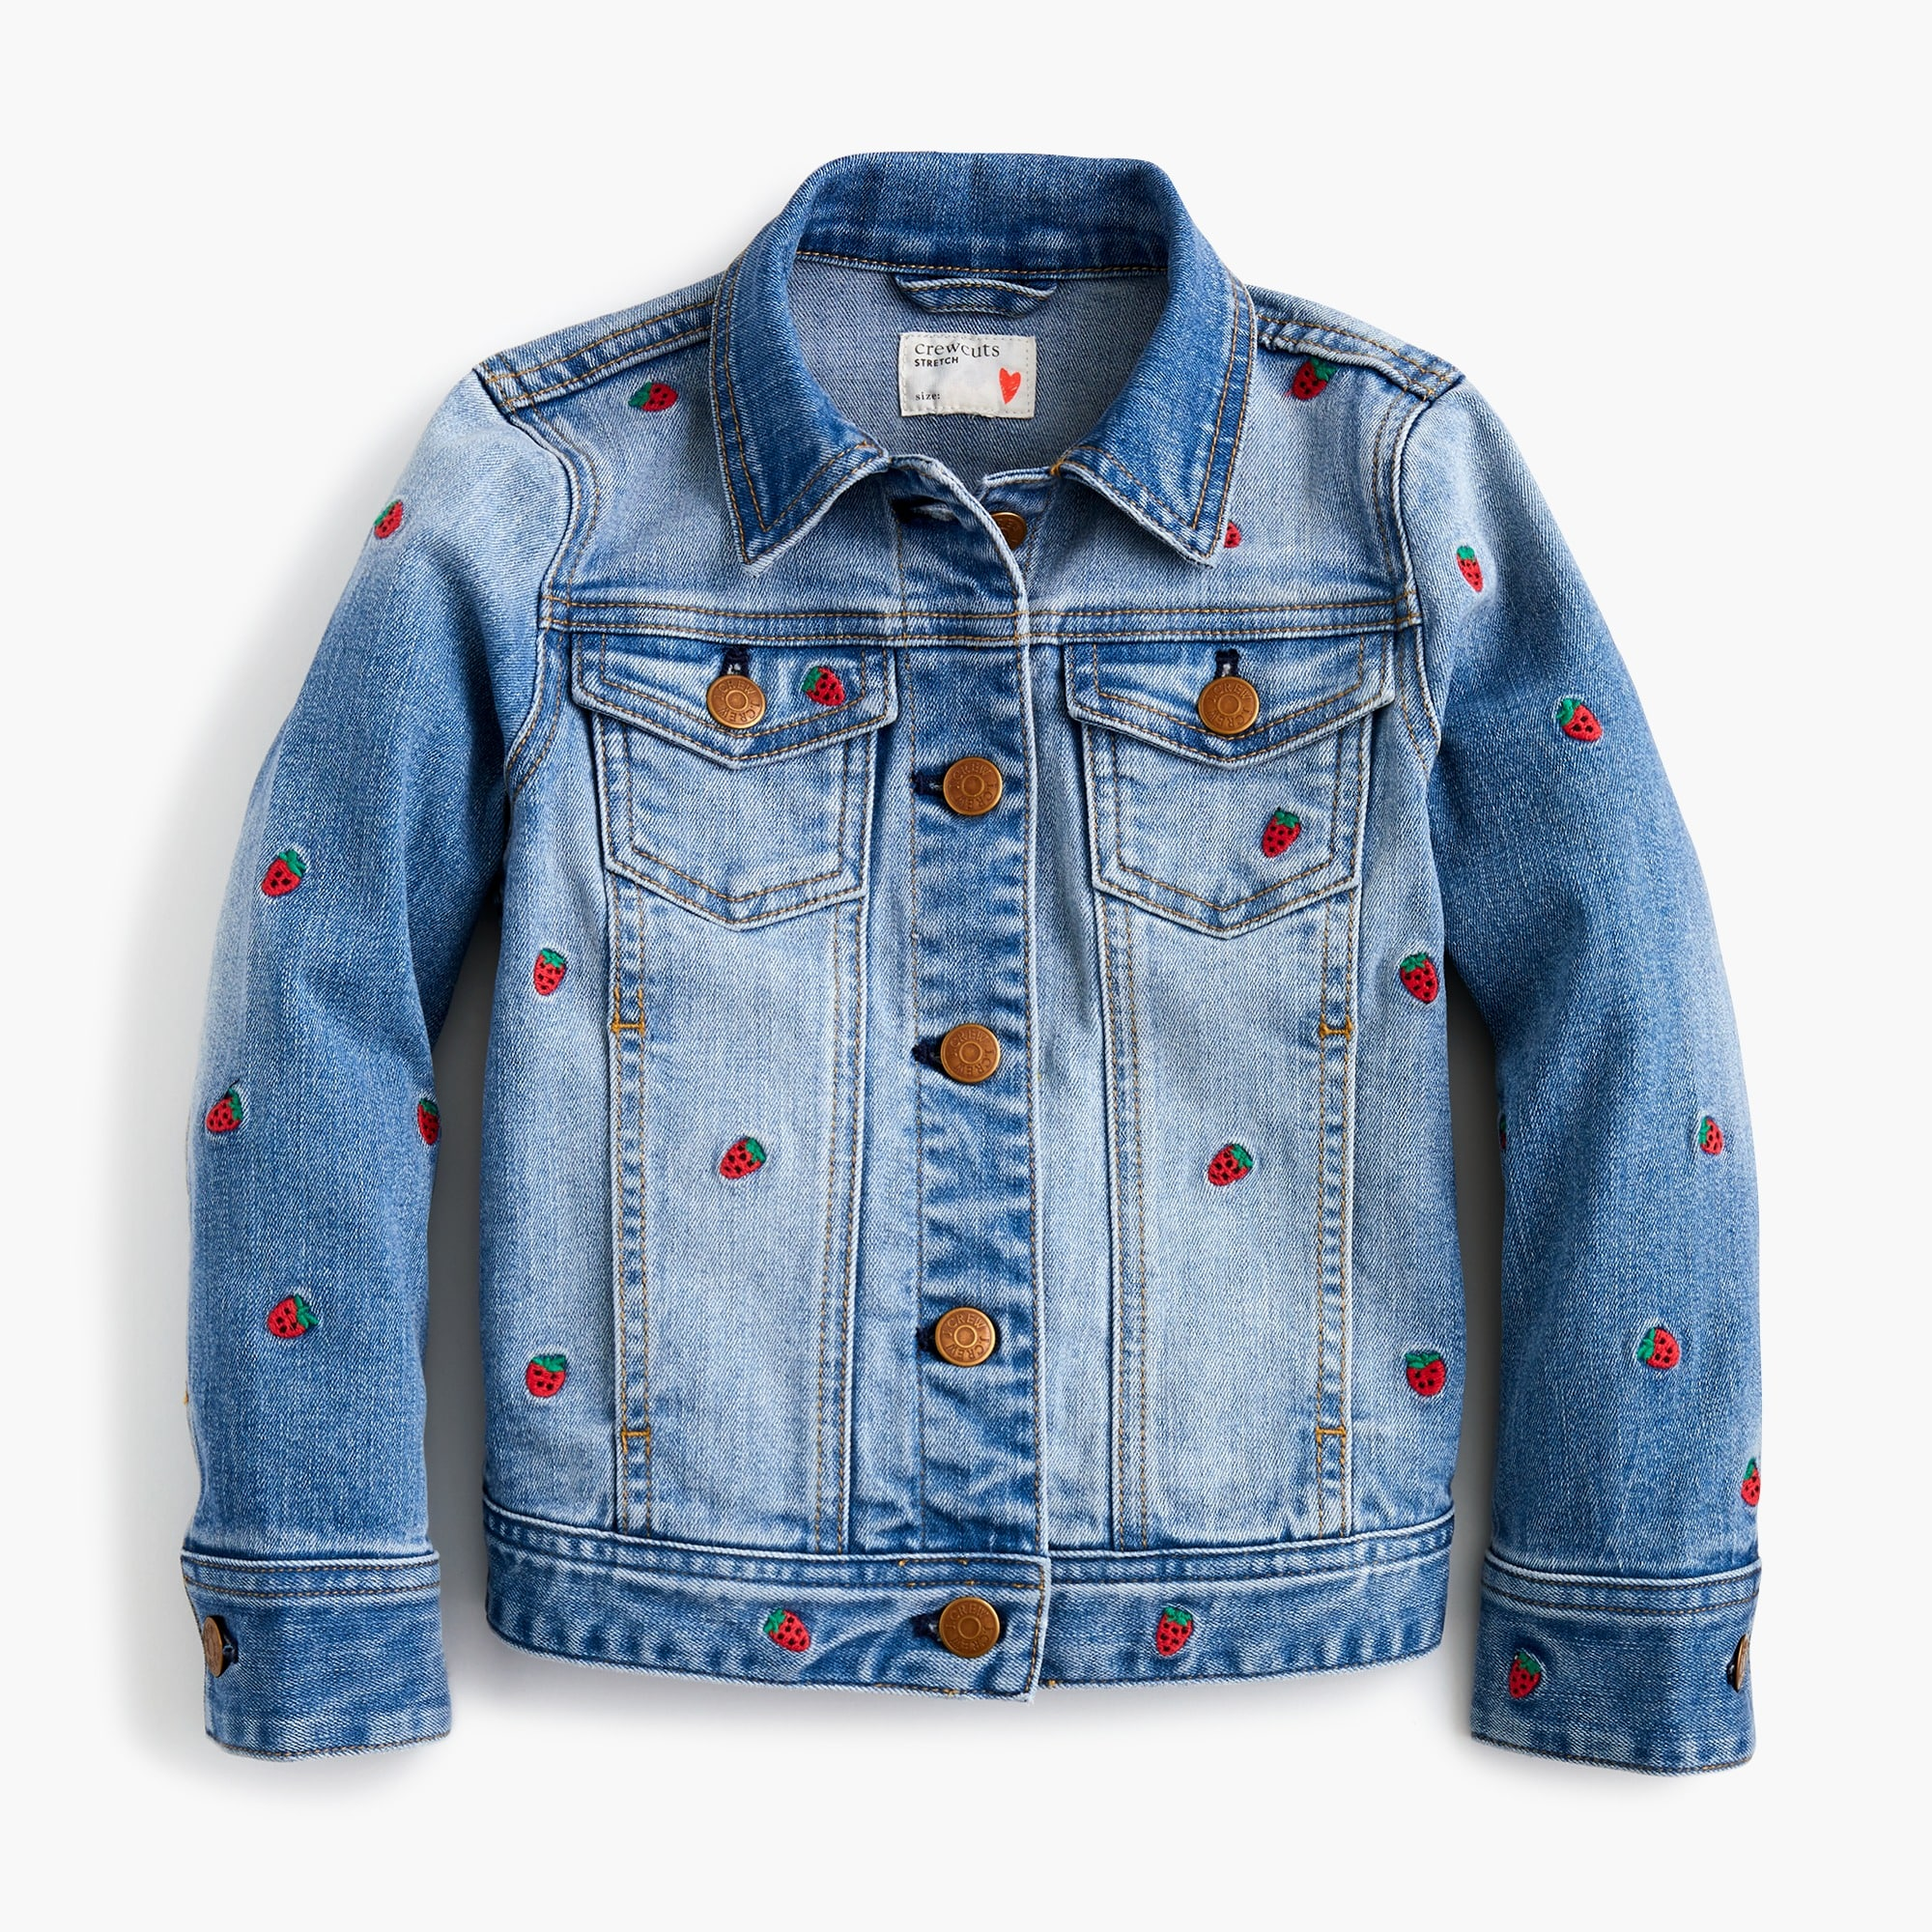 Girls' Madewell X crewcuts strawberry embroidered jean jacket